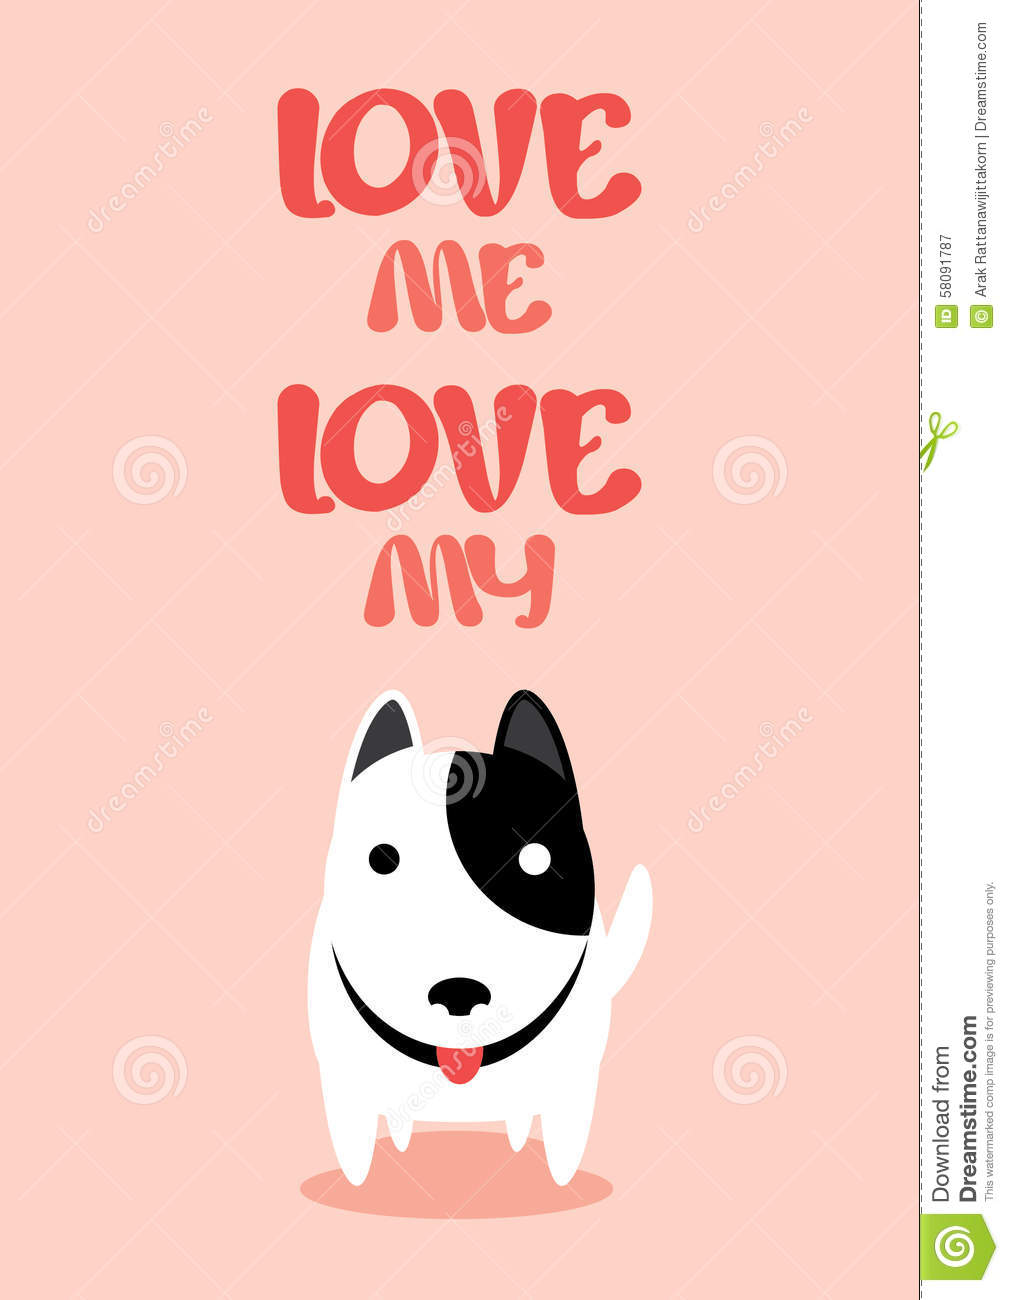 Love Me Like You Do Dvd Blu Ray Oder Vod Leihen: Love Me Love My Dog Vector. Stock Vector